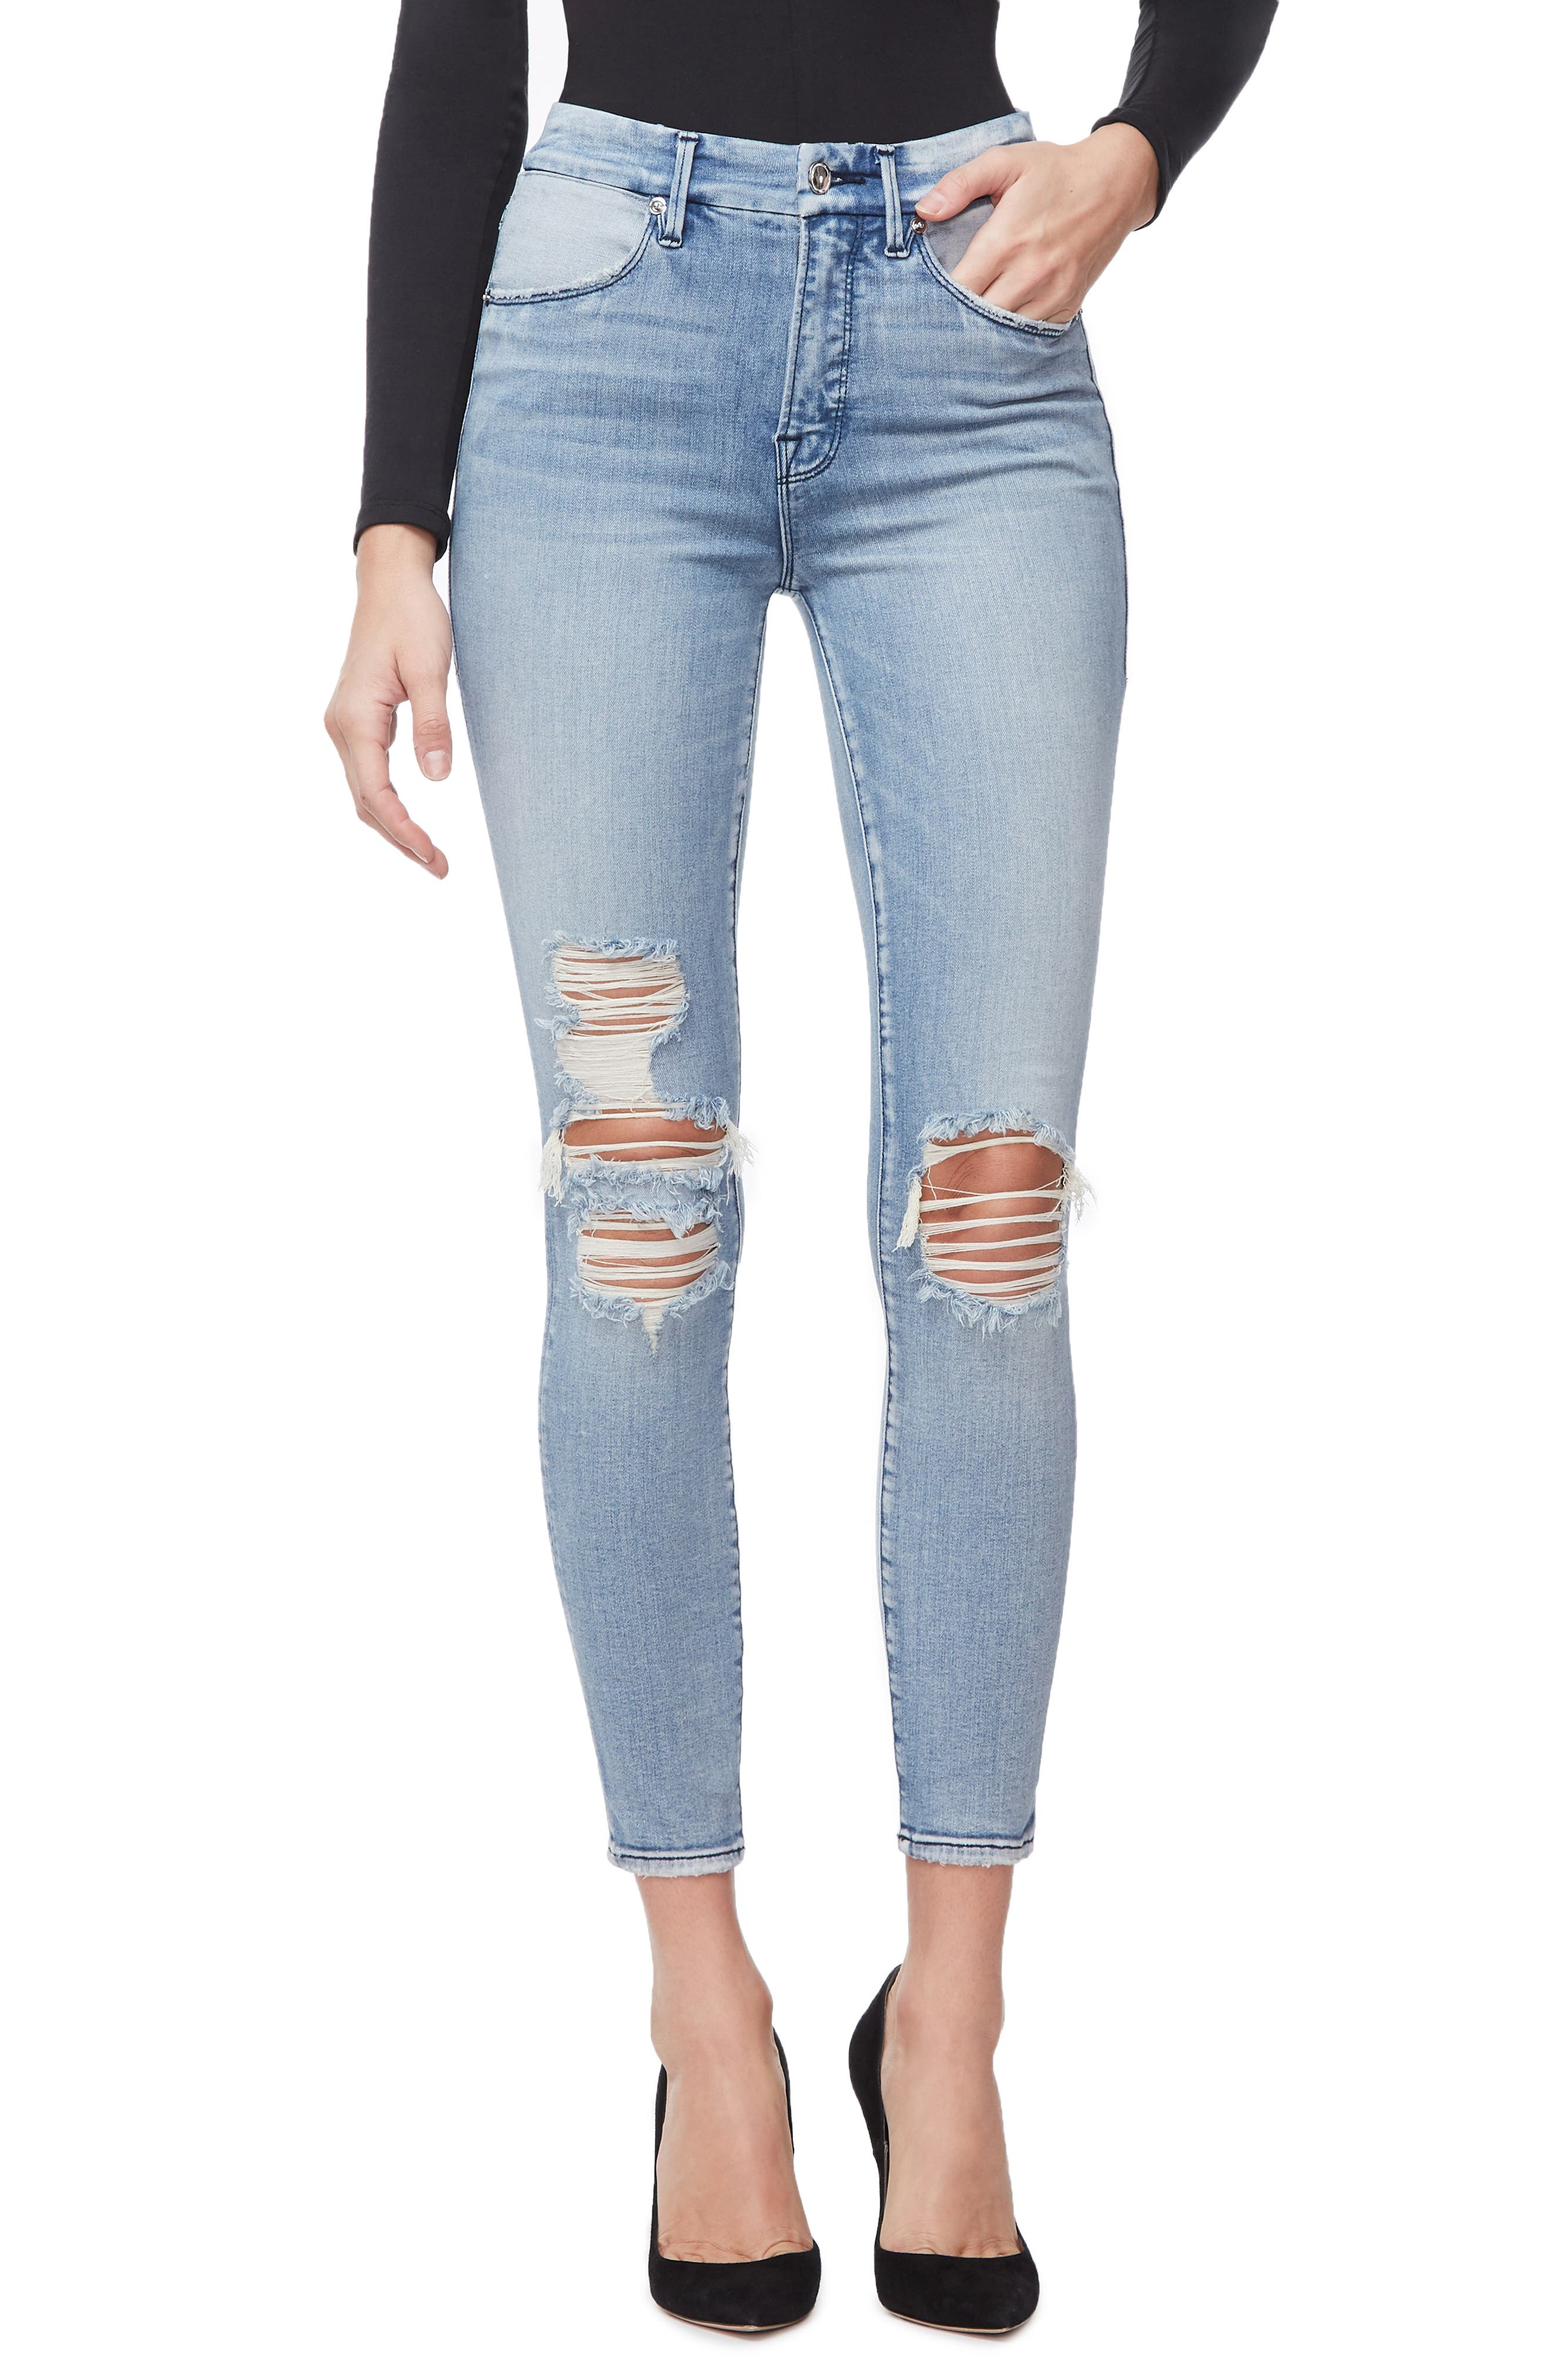 GOOD AMERICAN, Good Waist Ripped High Waist Crop Skinny Jeans, Main thumbnail 1, color, BLUE250